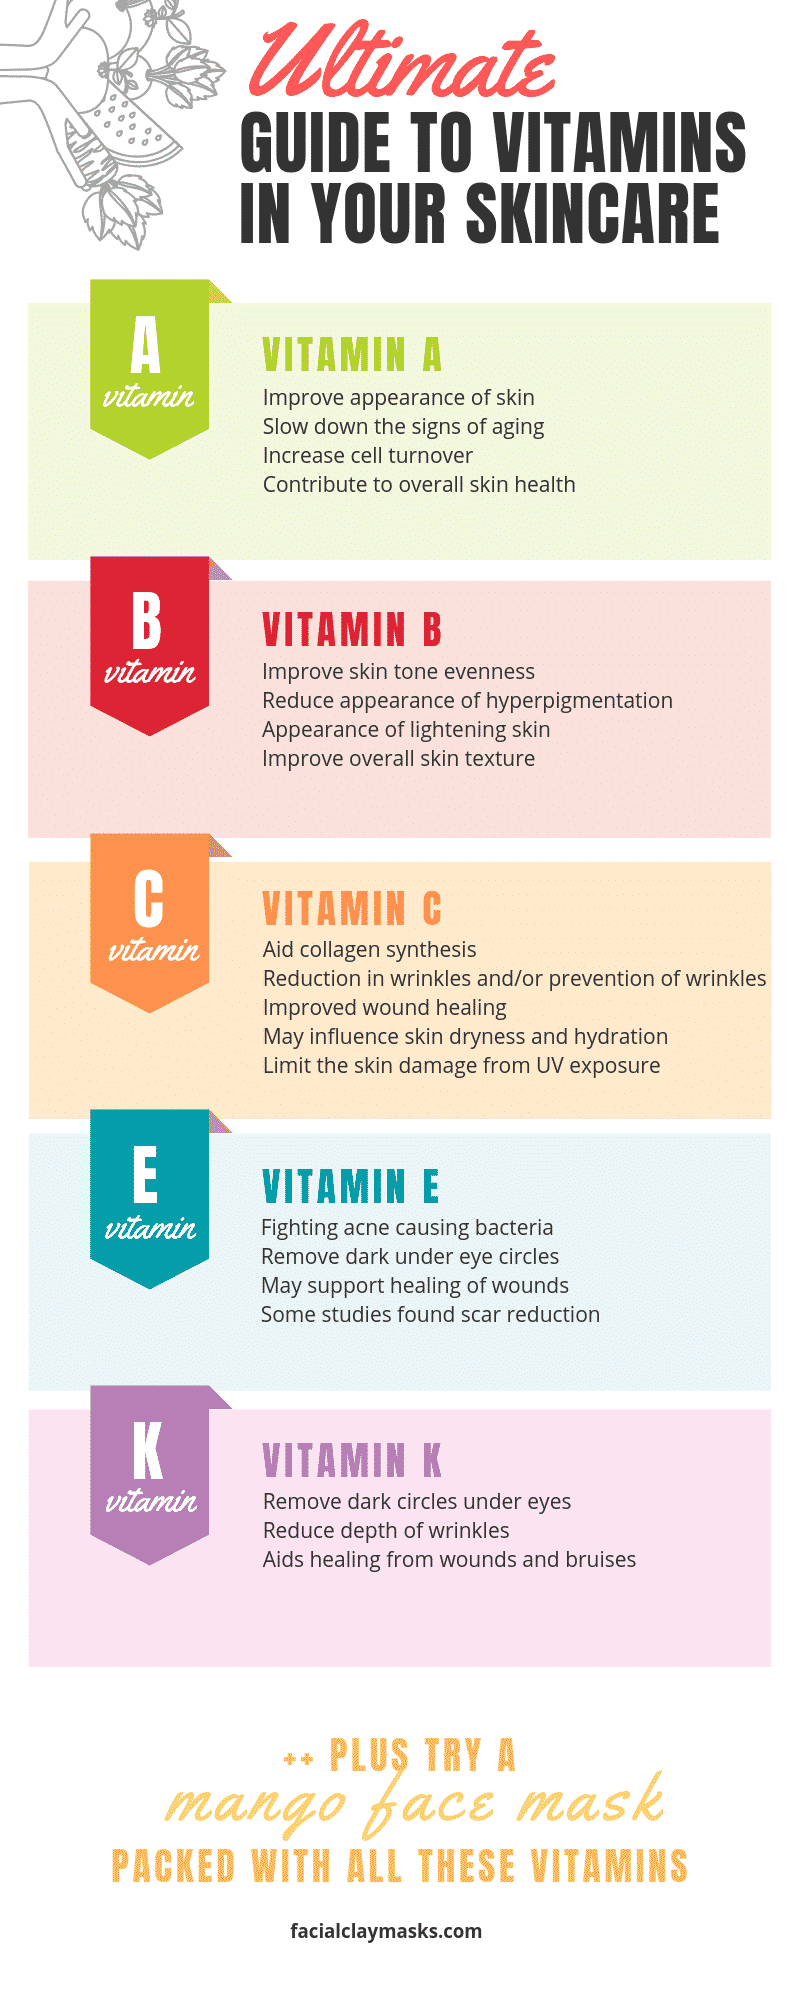 Guide to Vitamins in your Skincare